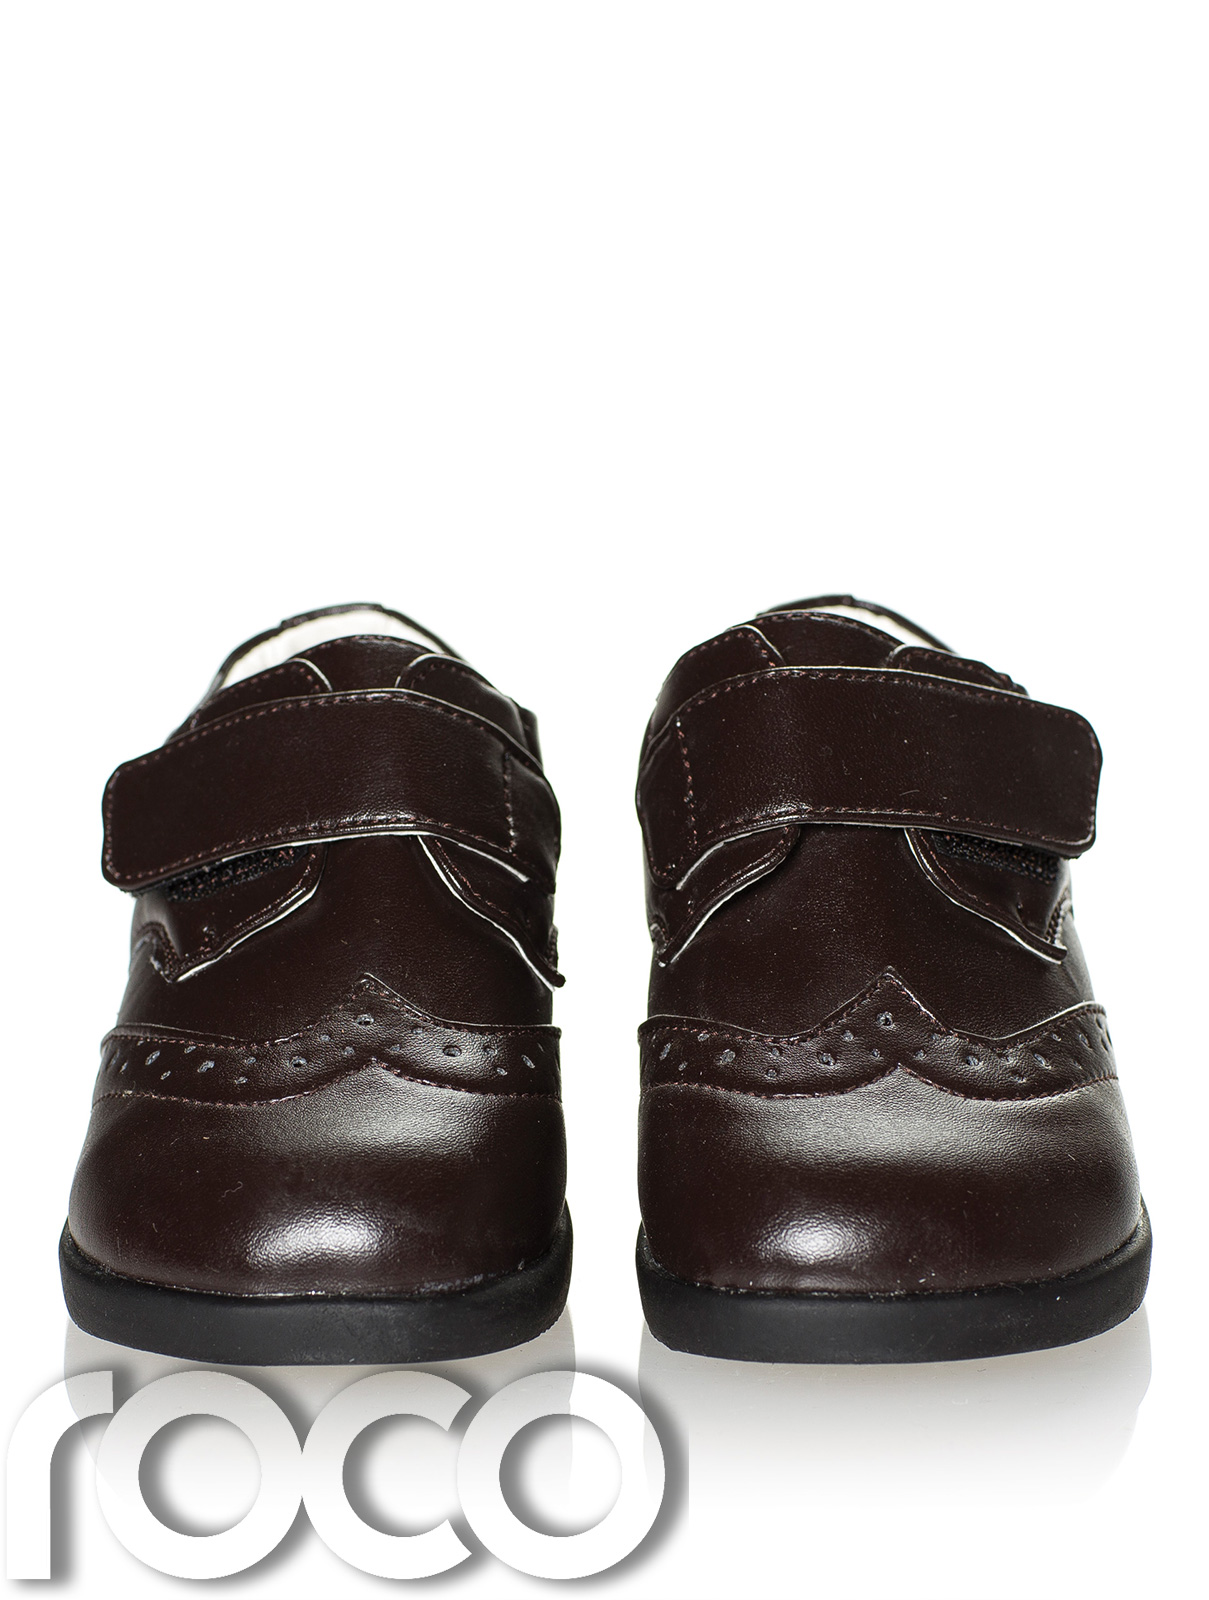 Shop boys's dress shoes: baby, toddler, preschool, and grade school! Find the right fit at Famous Footwear!